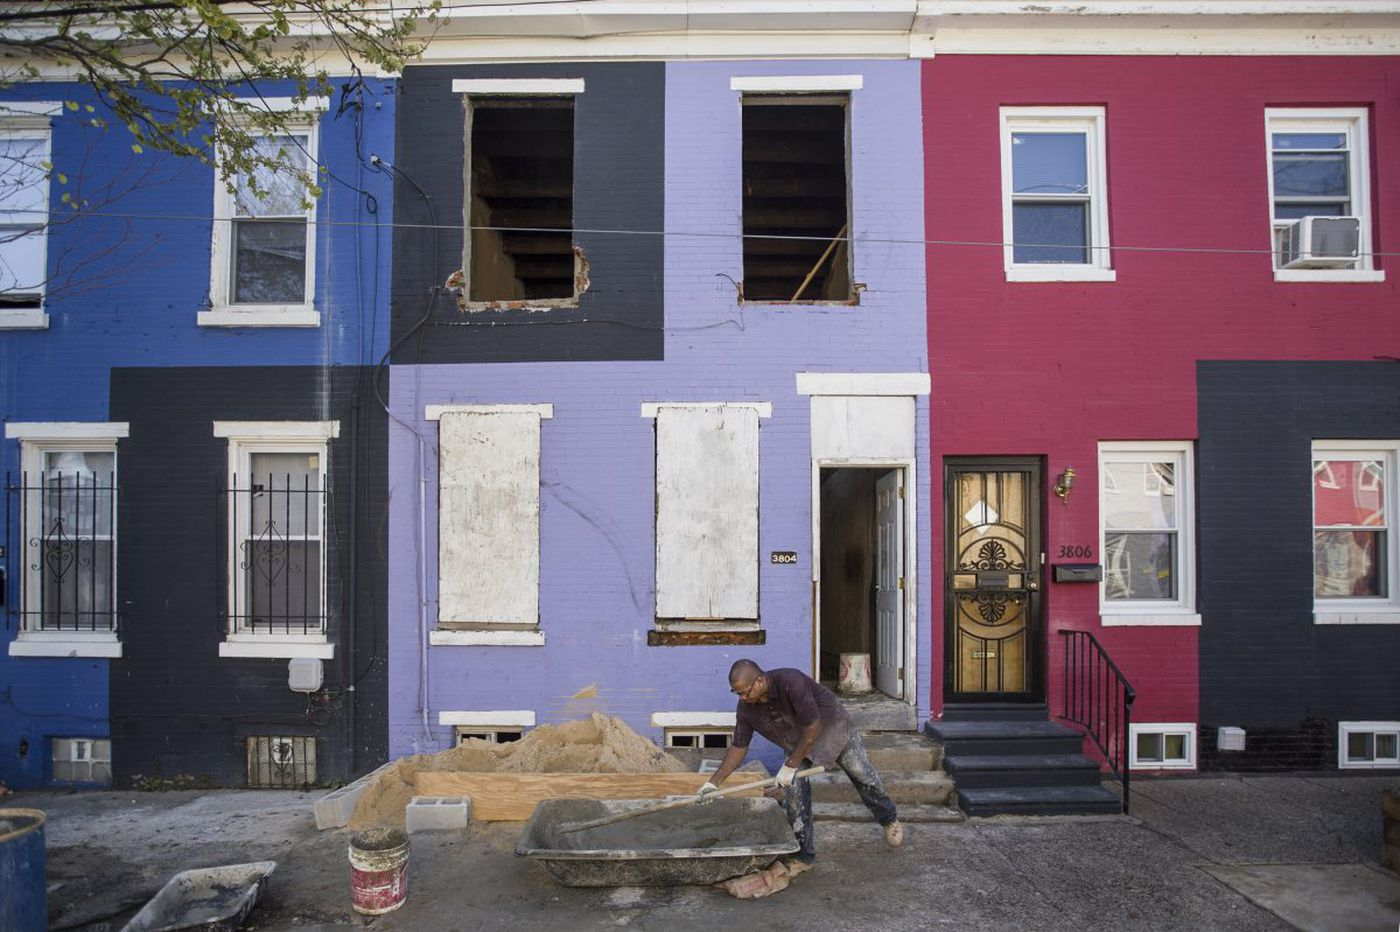 Phila Inquirer article on the disparities in Philly